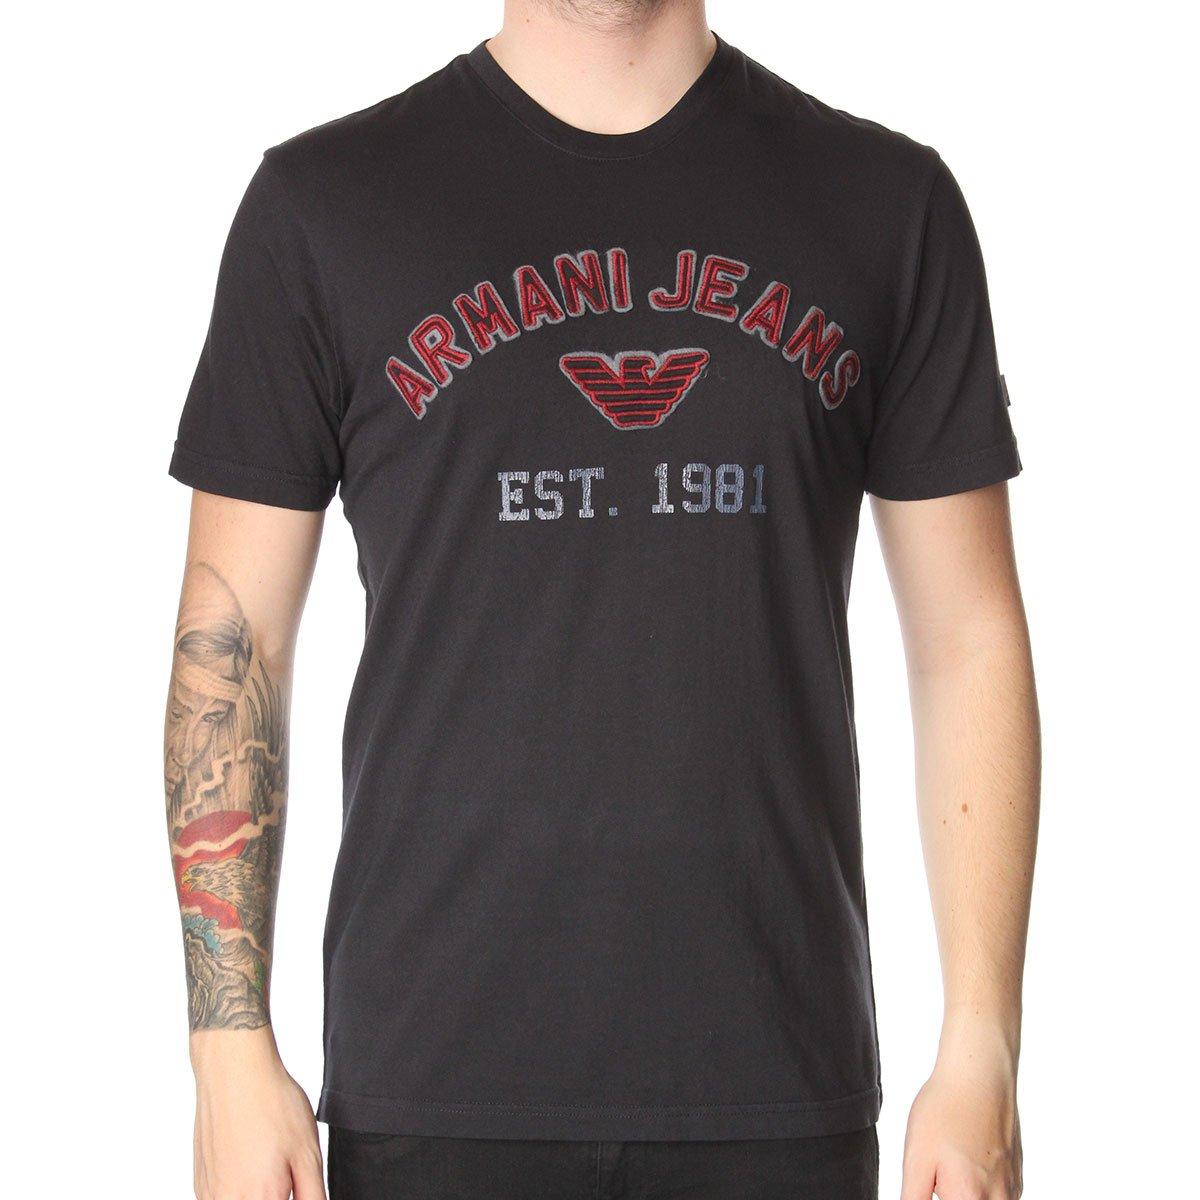 armani jeans h39 print t shirt armani jeans from the menswear site uk. Black Bedroom Furniture Sets. Home Design Ideas